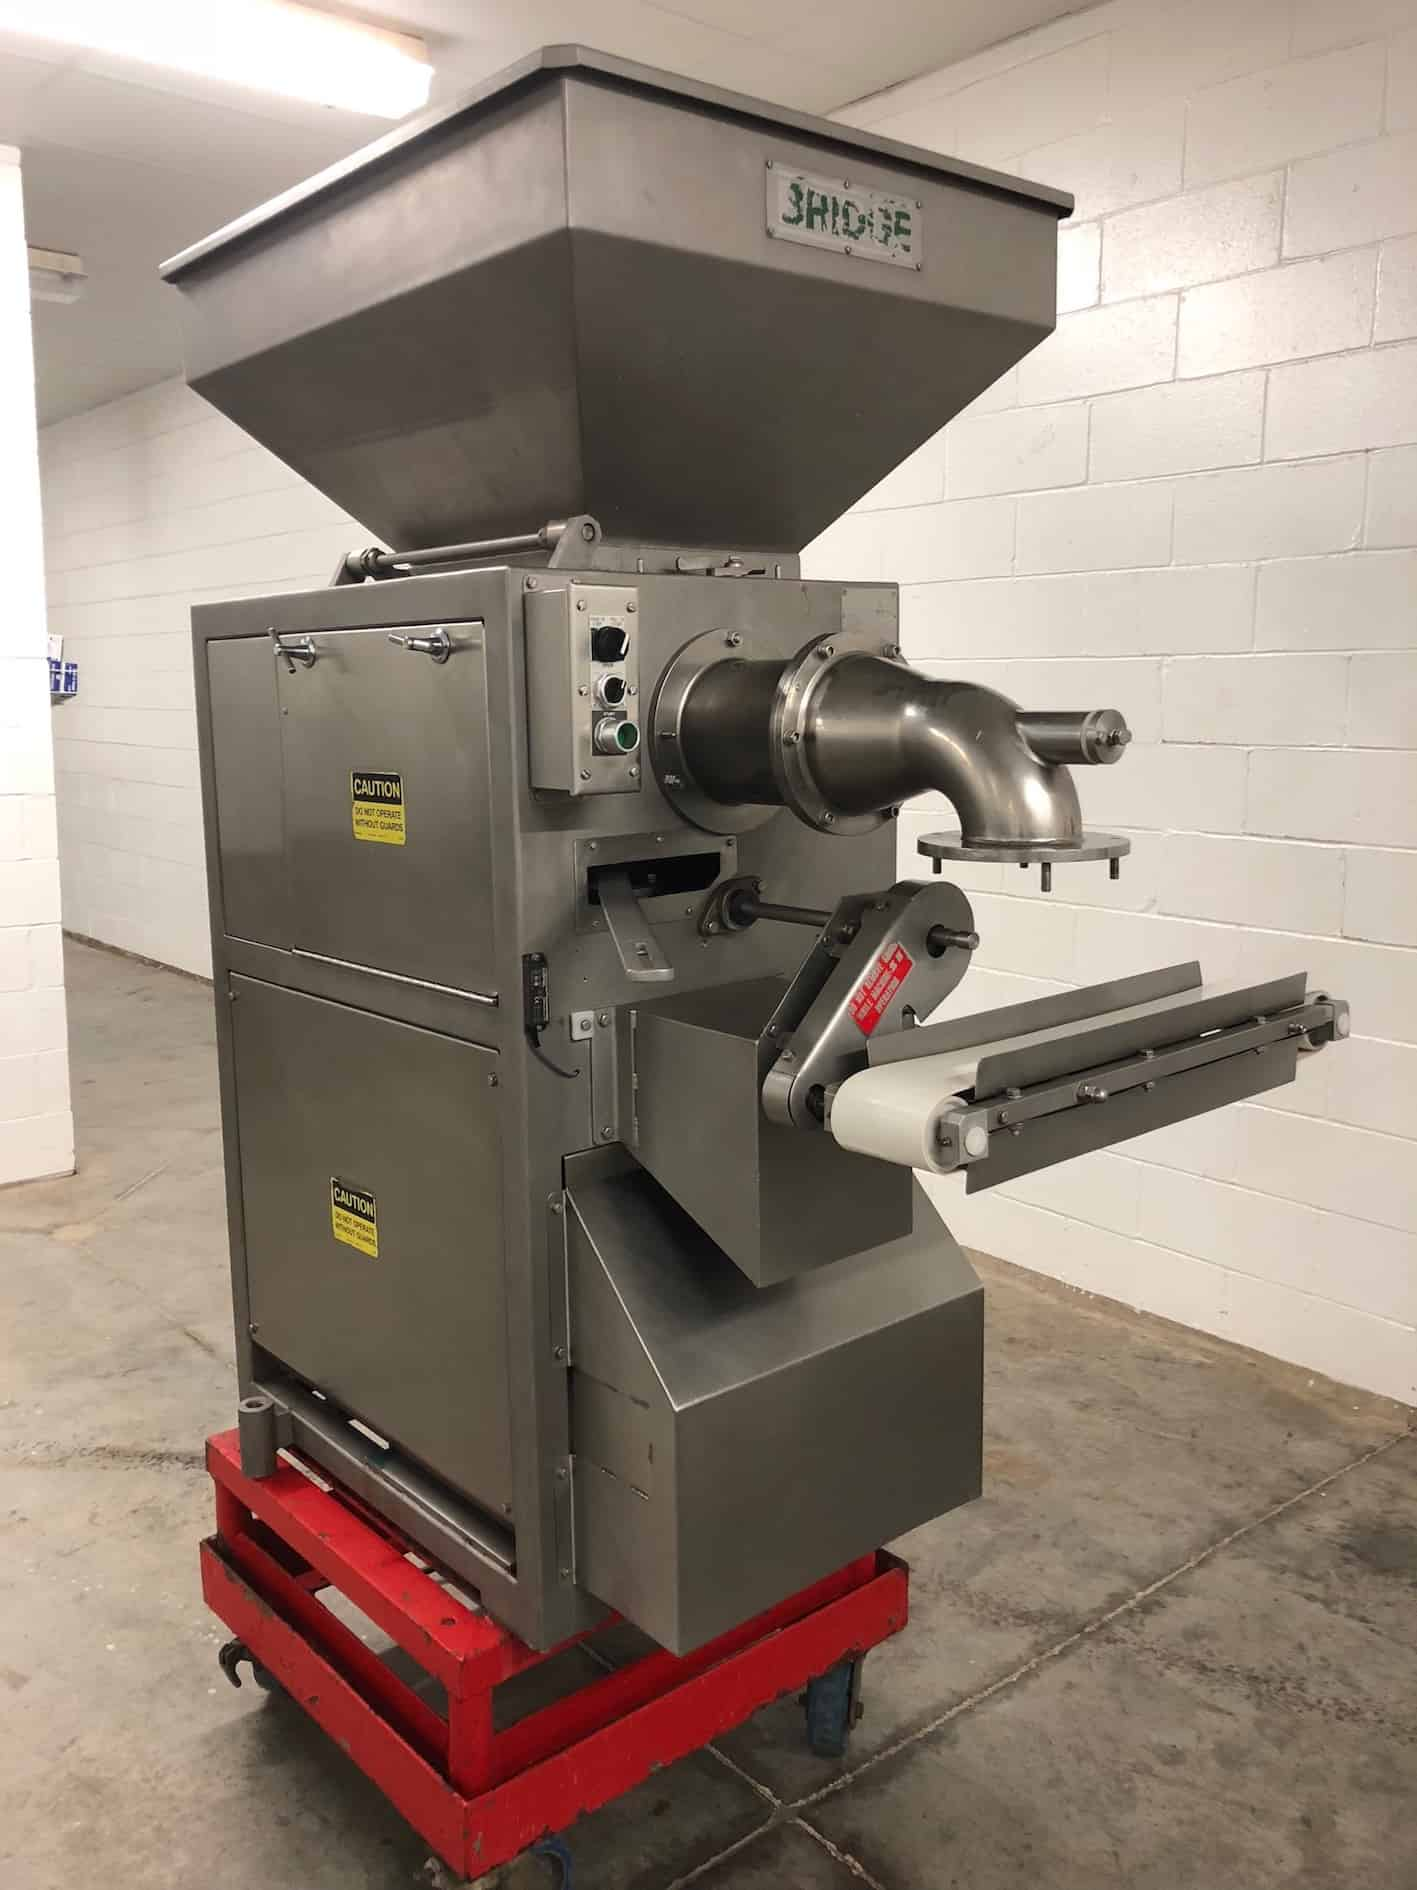 Bridge Rotary Machine Co Meatball Former, Model BT005, Serial Number 26317–10, 208 V 3 Phase (Shown Cycling) (DISMANTLED FOR CLEANING. UNIT COMPLETE AND IN OPERATING CONDITION)